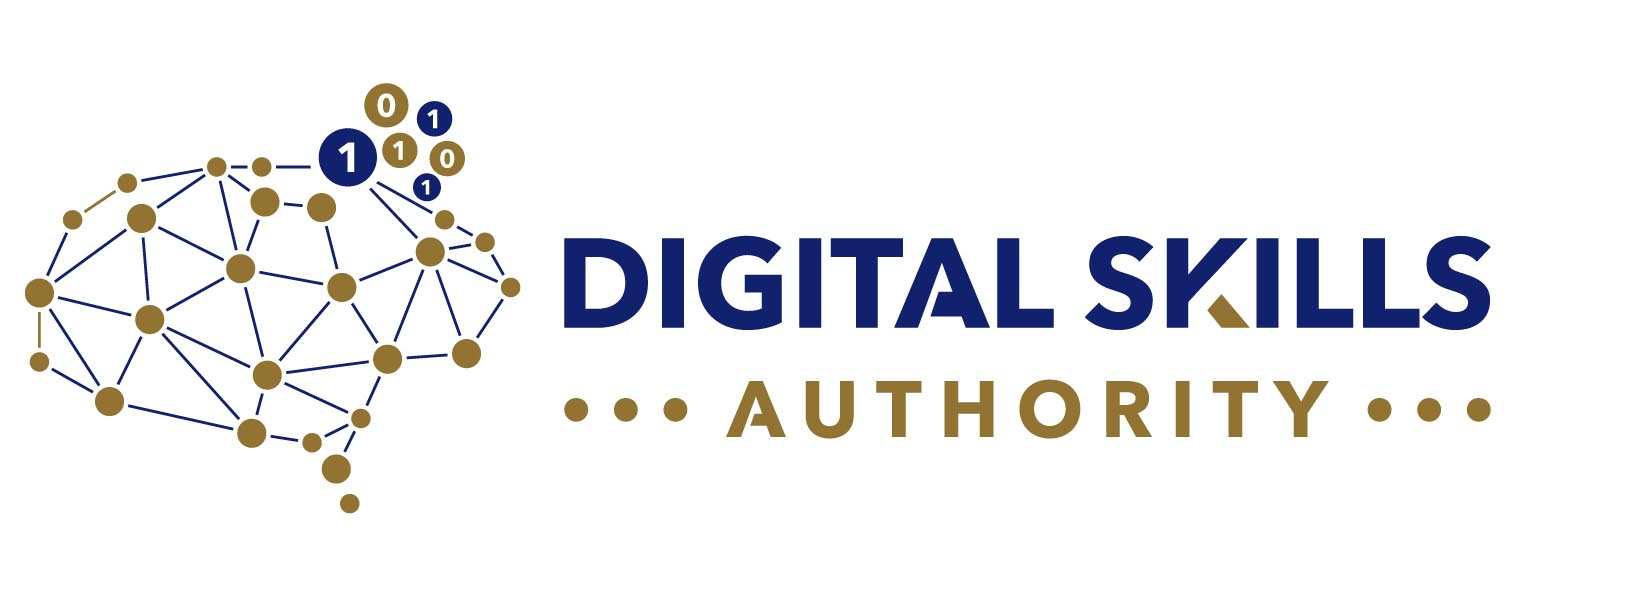 Digital Skills Authority